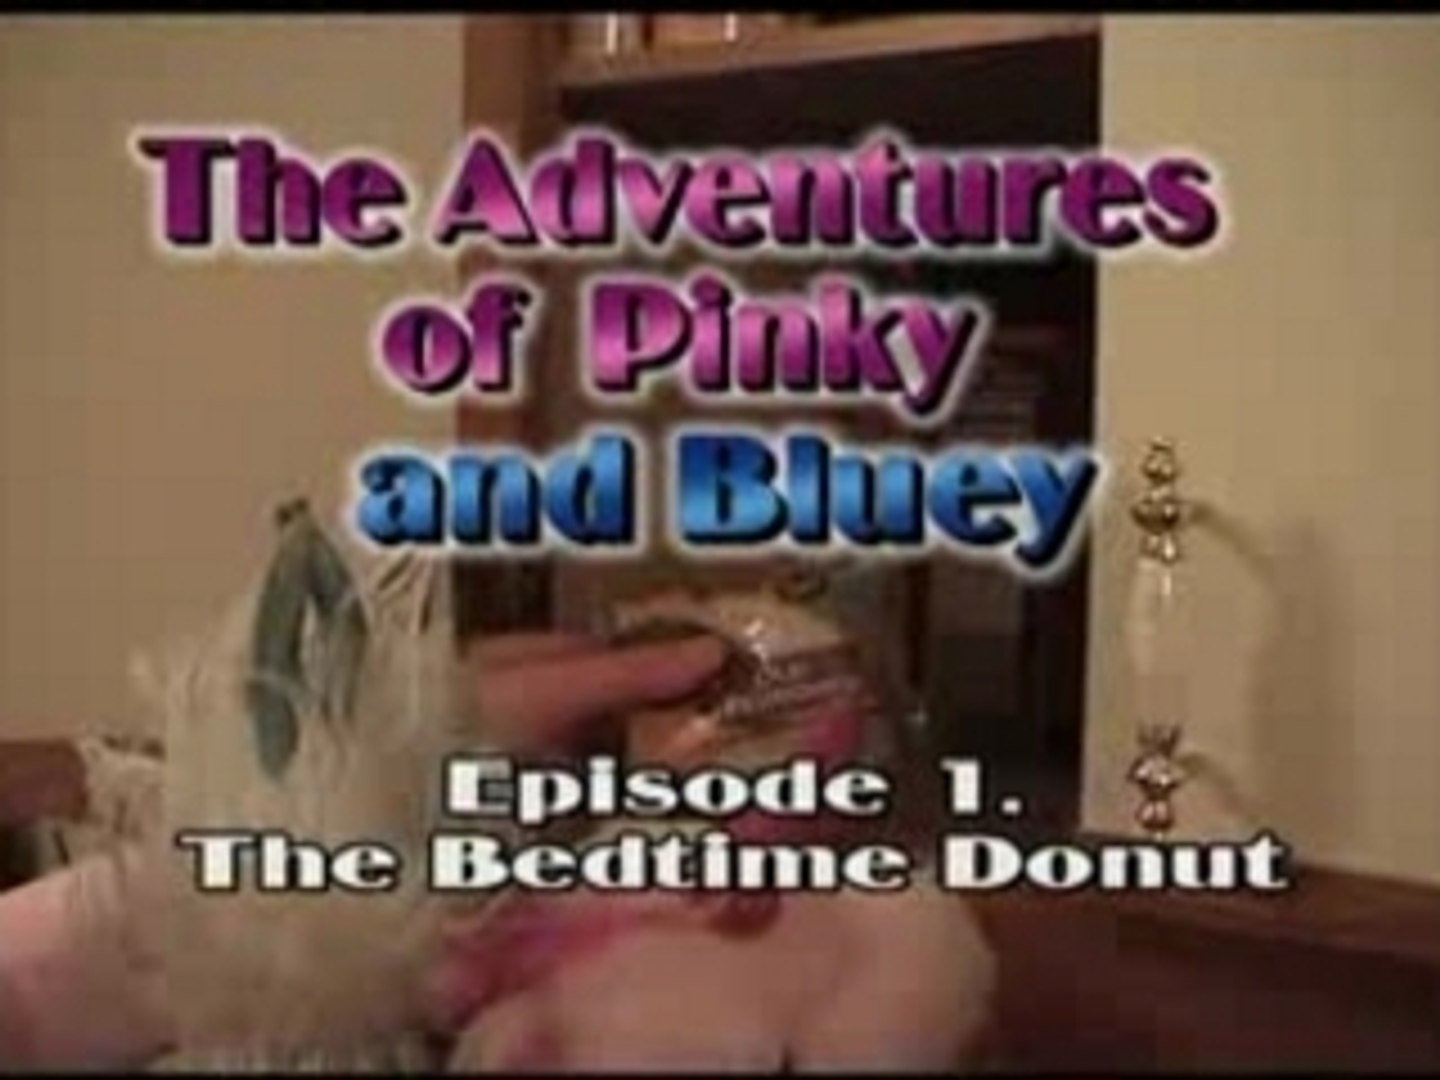 Pinky And Bluey: The Adventure of the Be